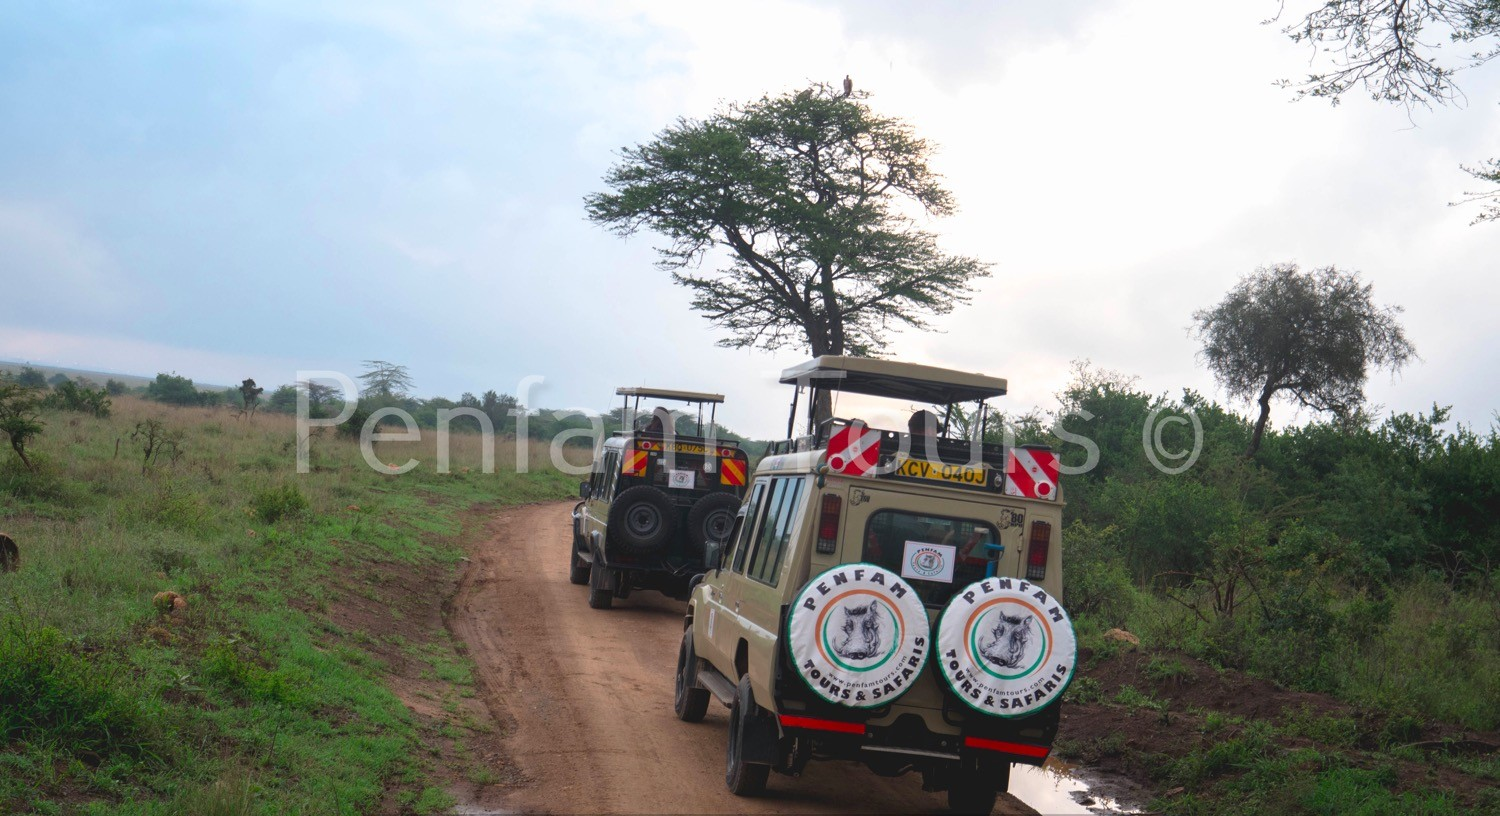 Penfam Tours and Safaris 4x4 Landcruiser Van Game Drive